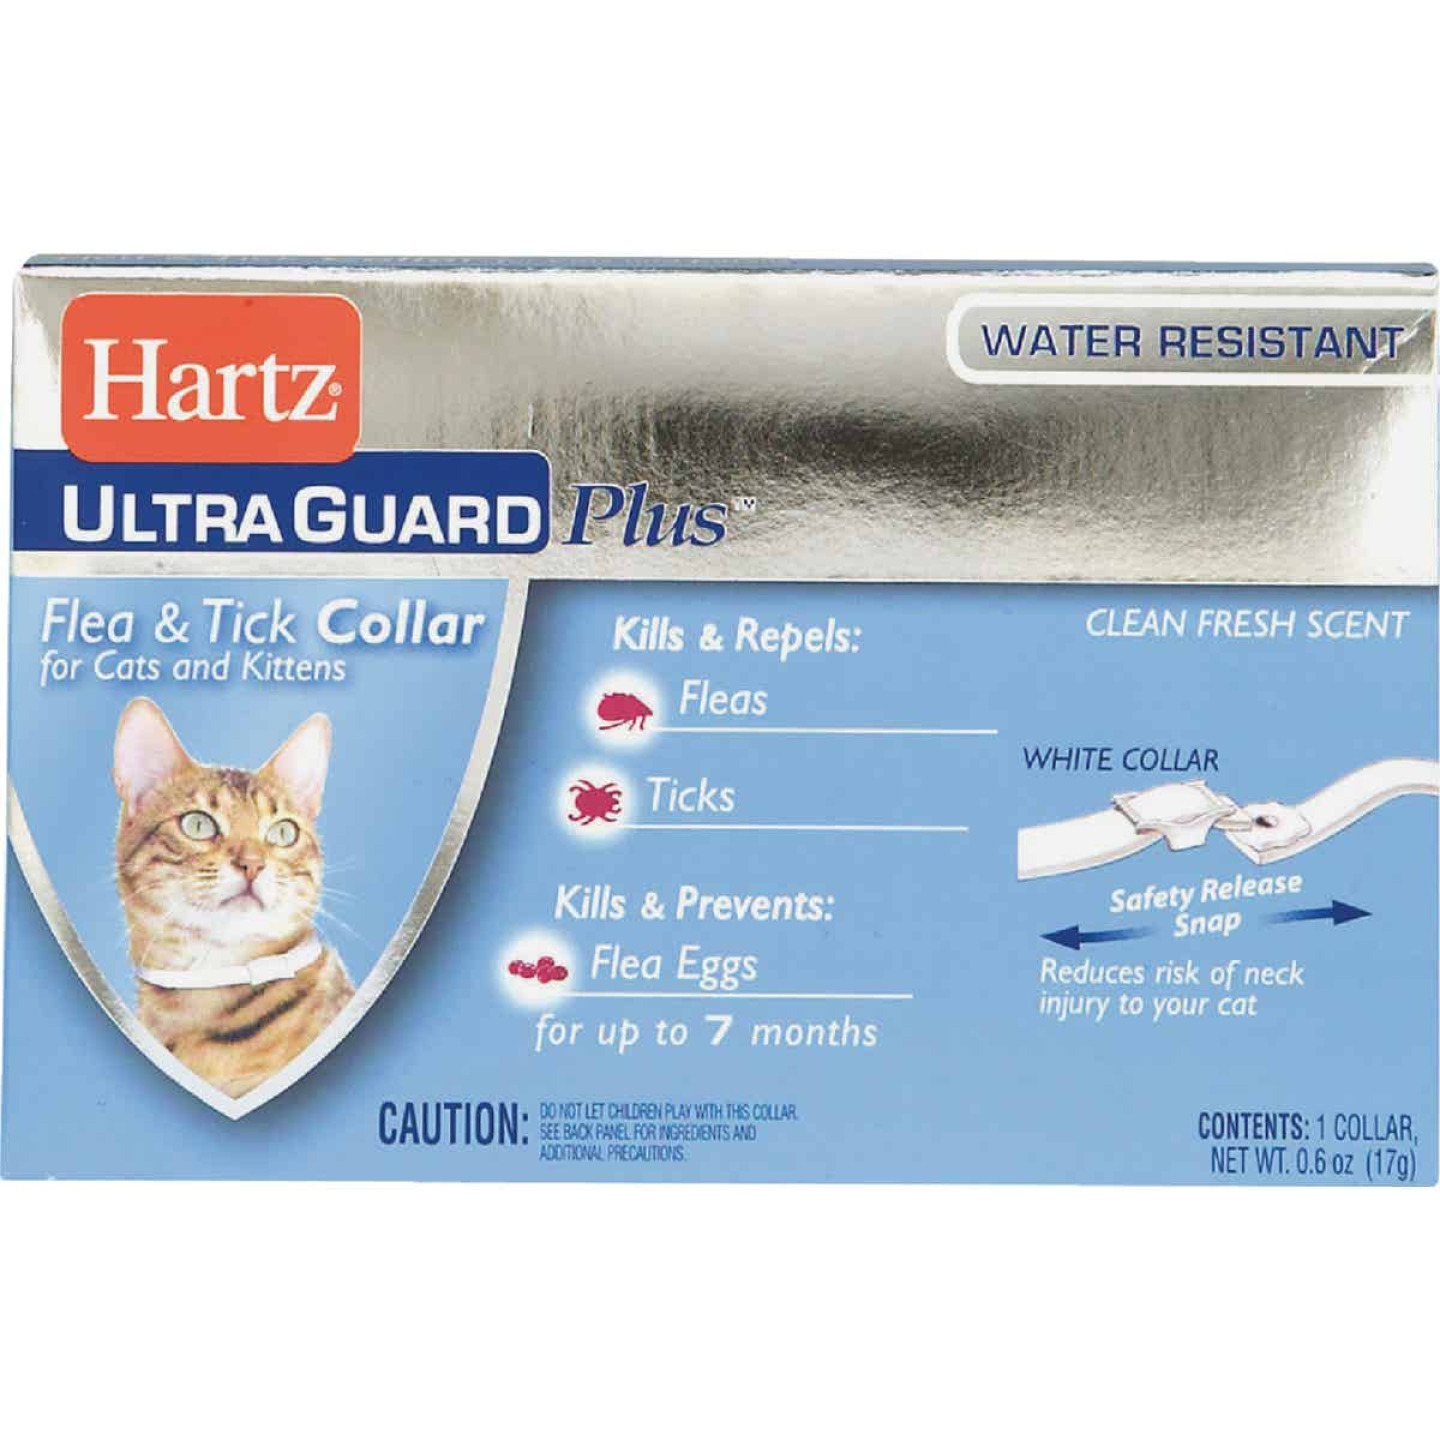 Hartz Ultra Guard Plus Water Resistant Flea & Tick Collar For Cats & Kittens Image 1